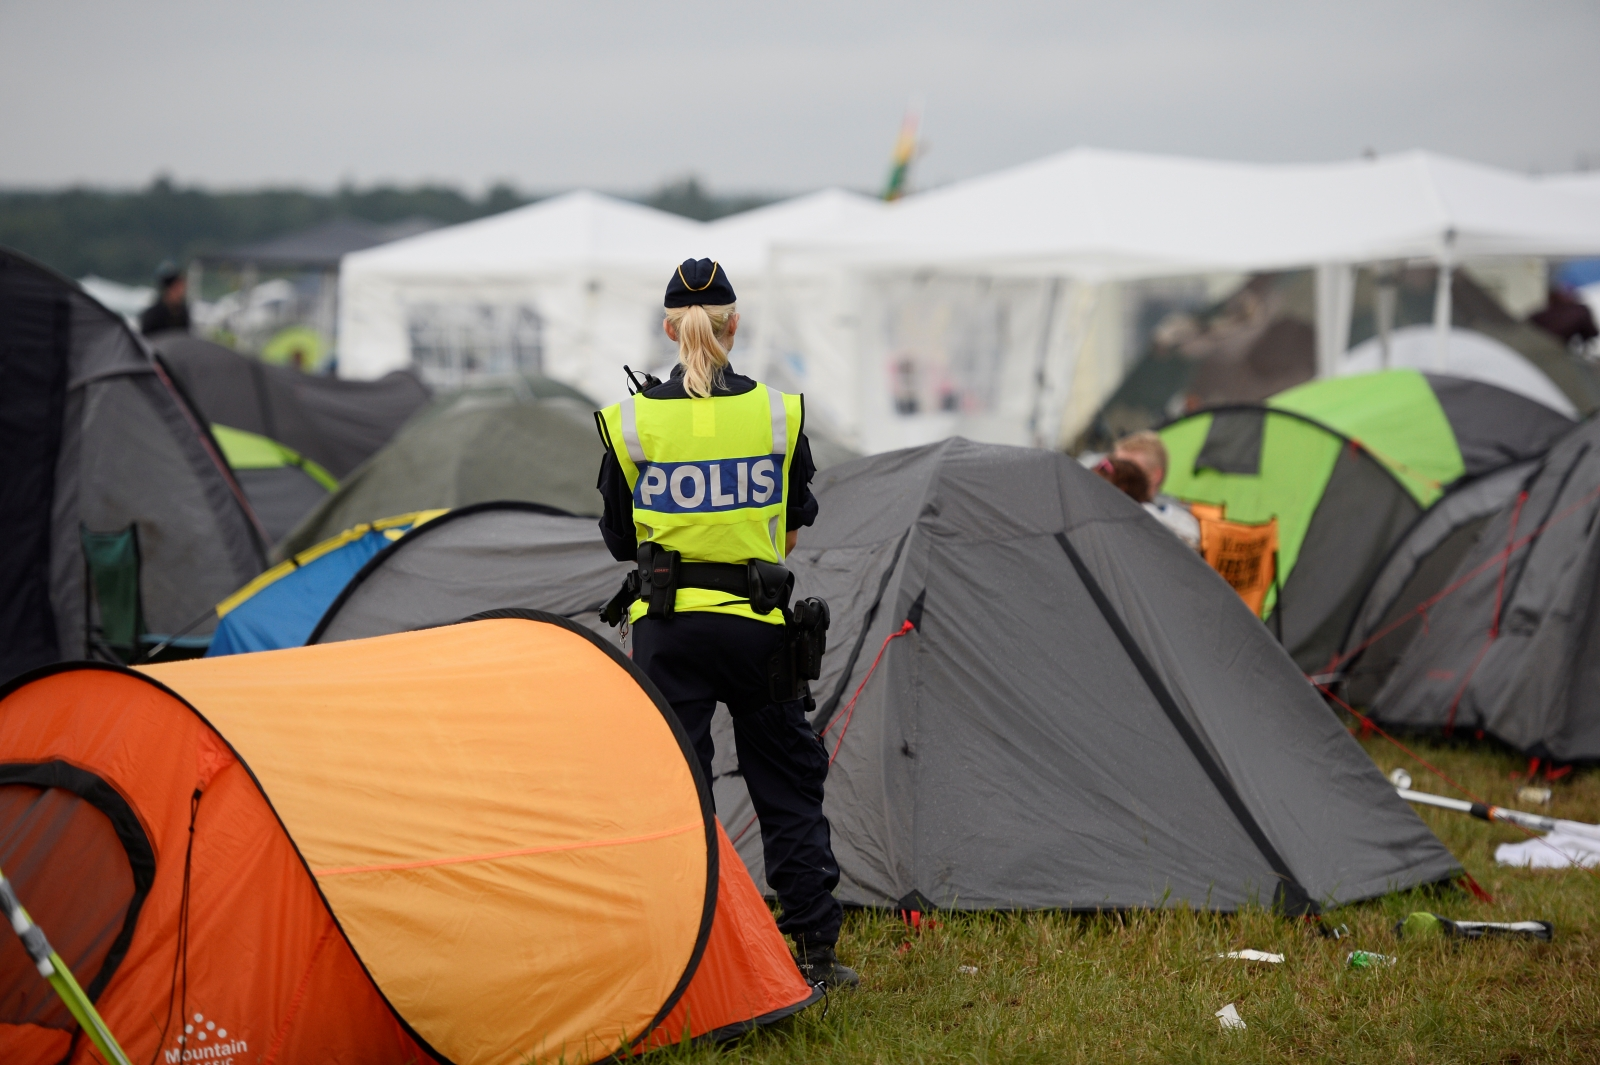 In Sweden some rapists attacked women during a music festival